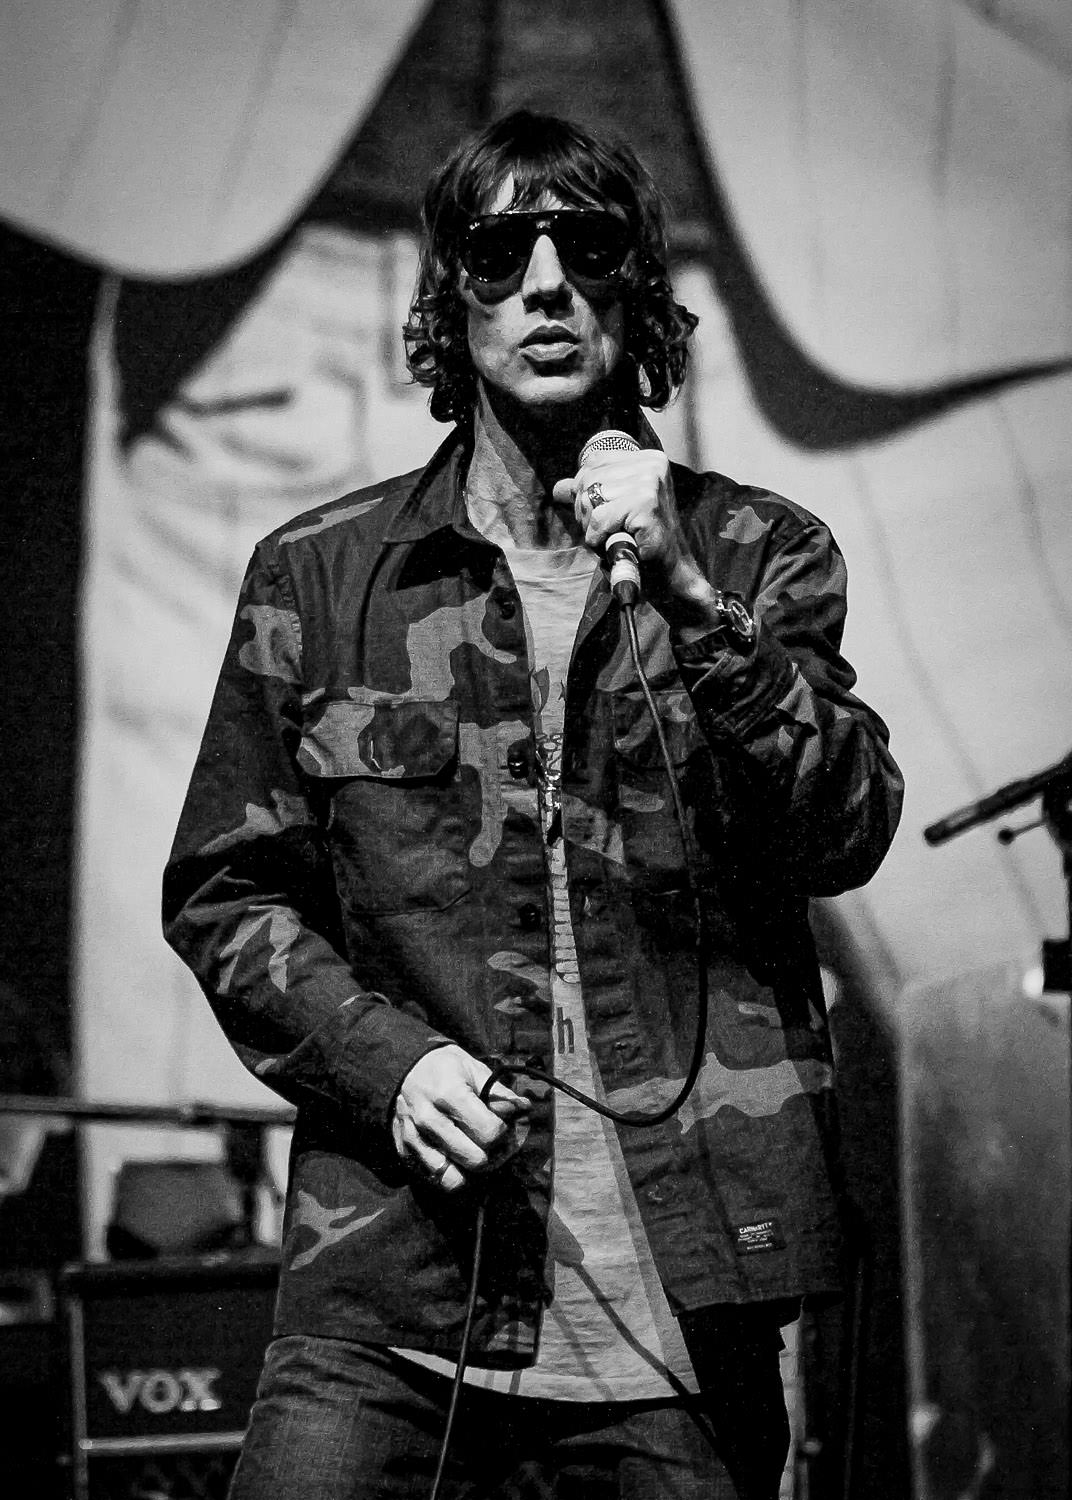 Richard Ashcroft singing on stage wearing army jacket in Manchester